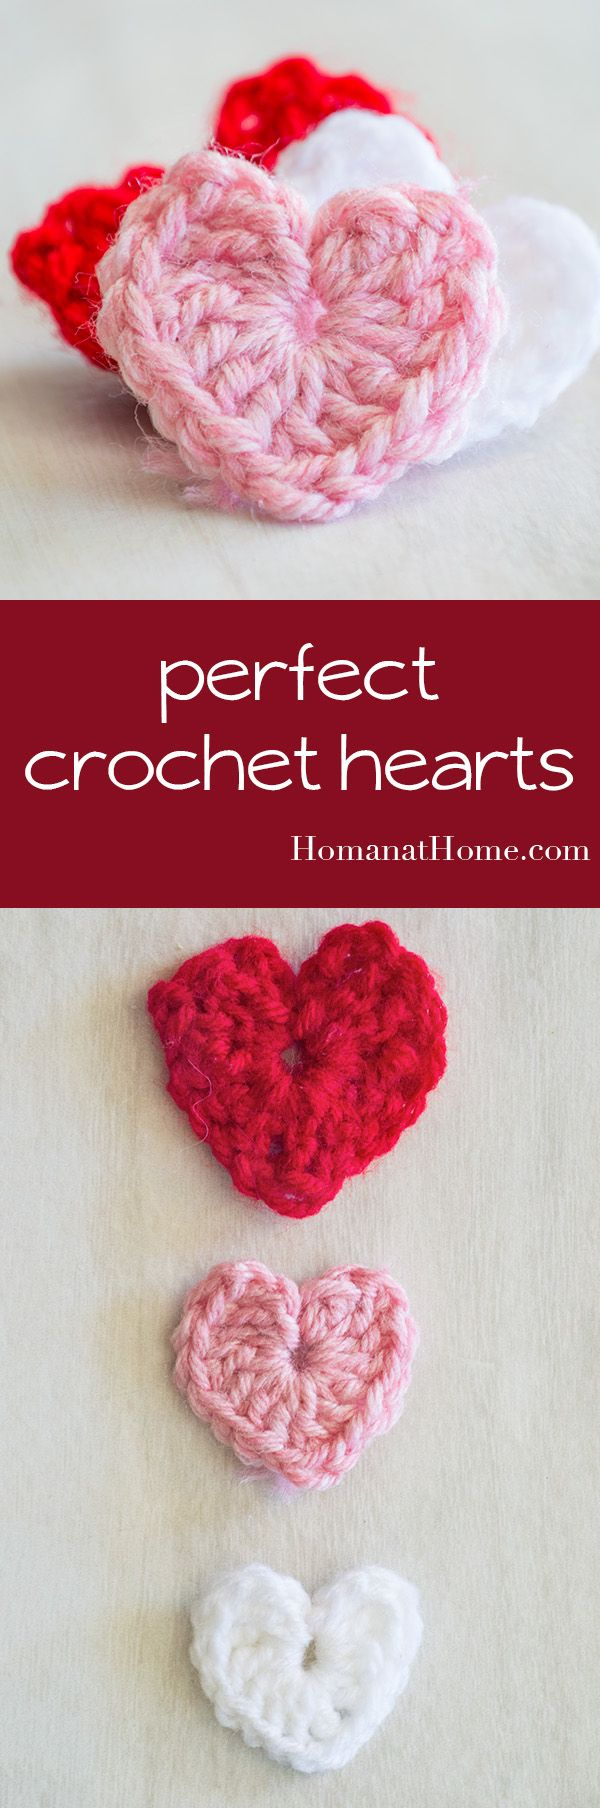 You only need a scrap of yarn and five minutes to make perfect little crocheted hearts. The pattern is versatile and can be made in any size you'd like!